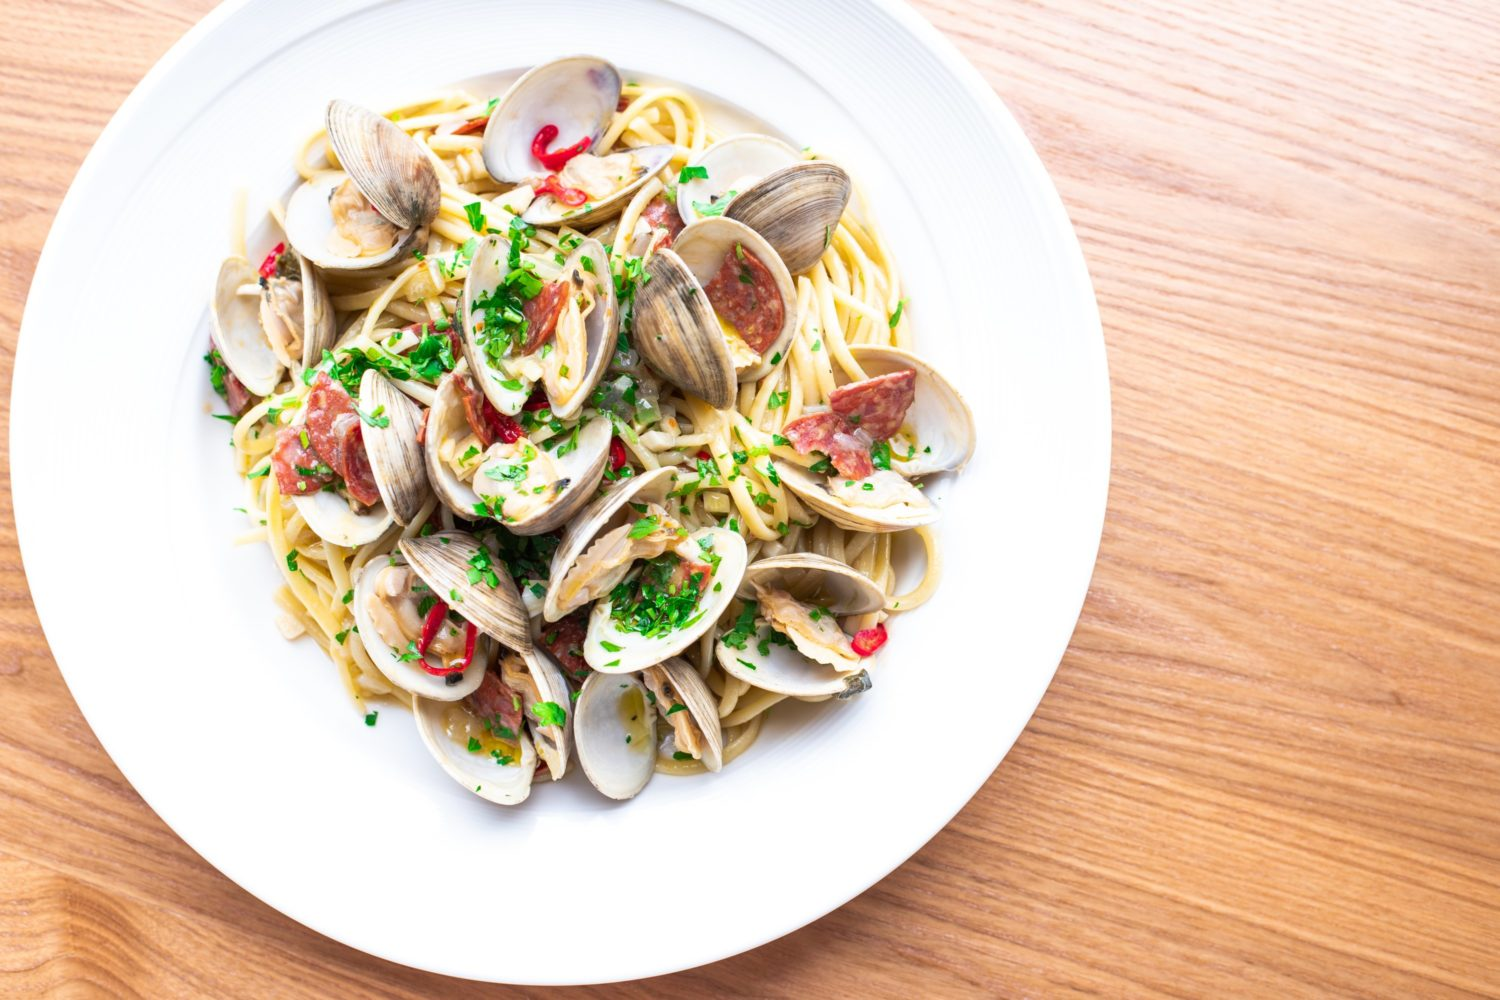 Pasta is handmade daily and topped with ingredients like clams or springy ramps. Photograph by Kelli Scott.